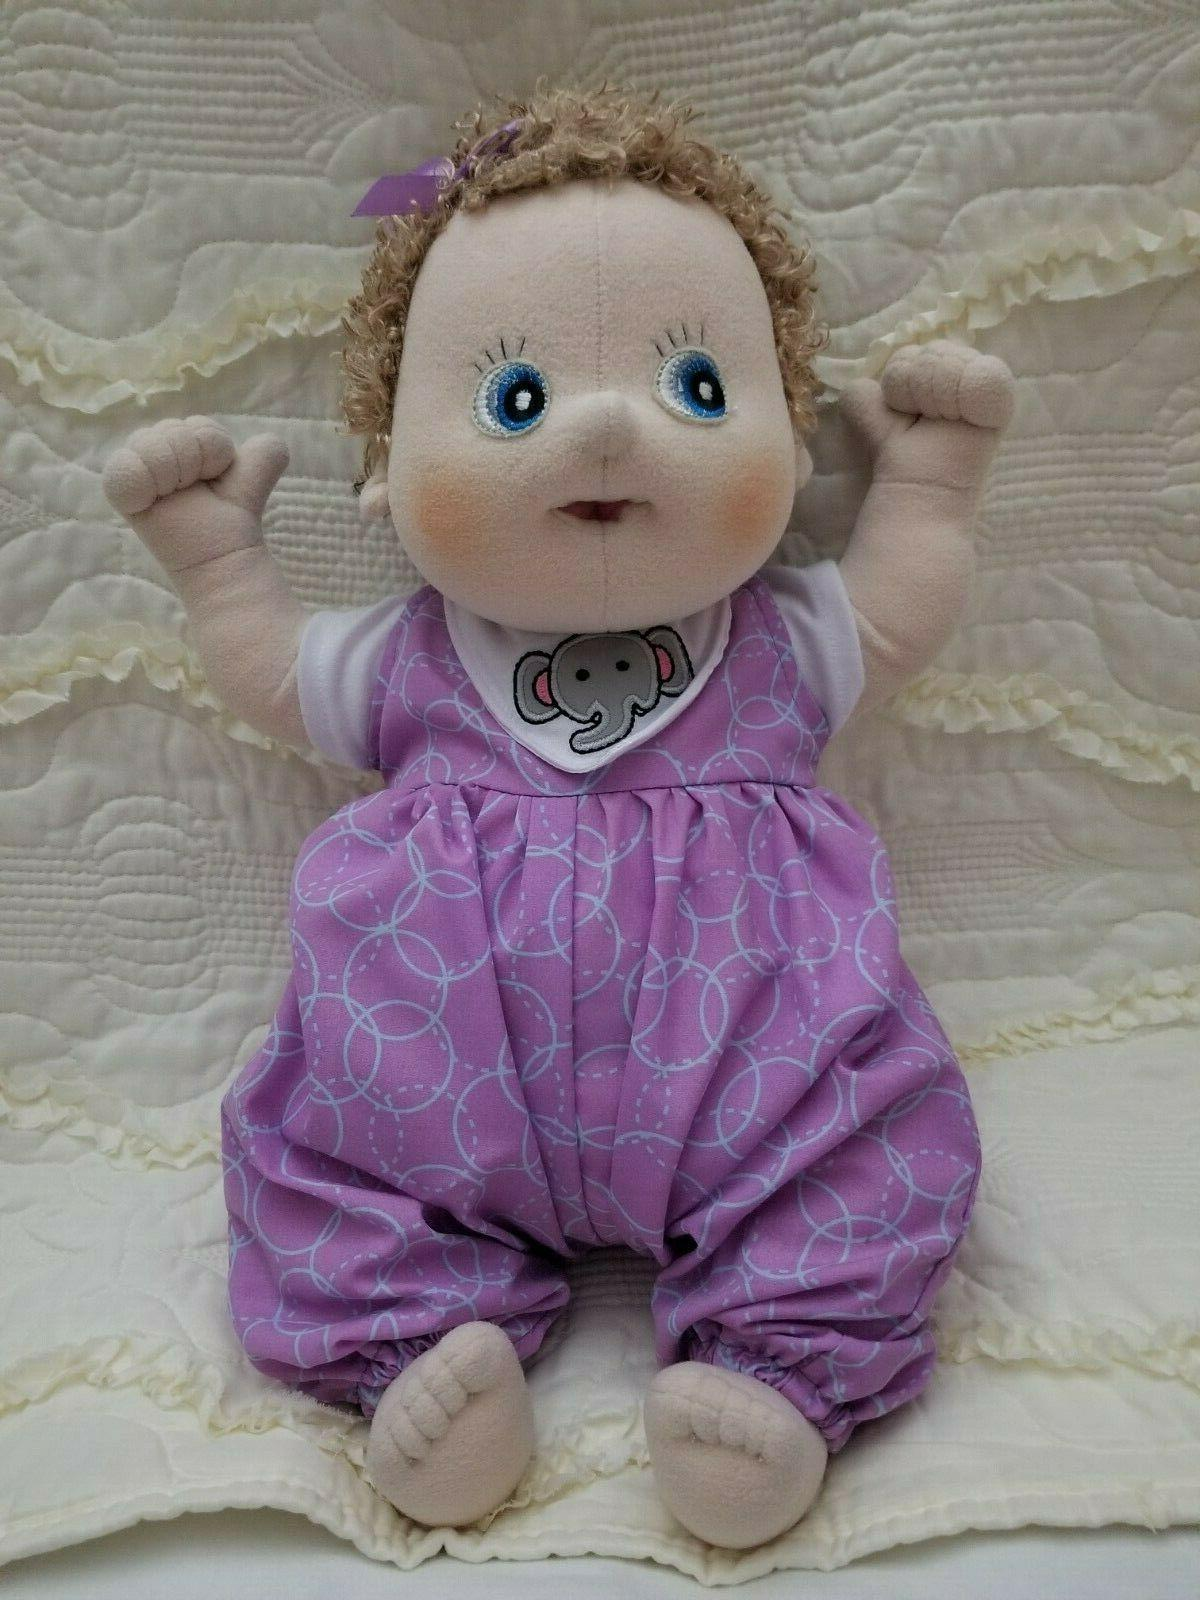 rubens barn soft sculpture baby therapy doll